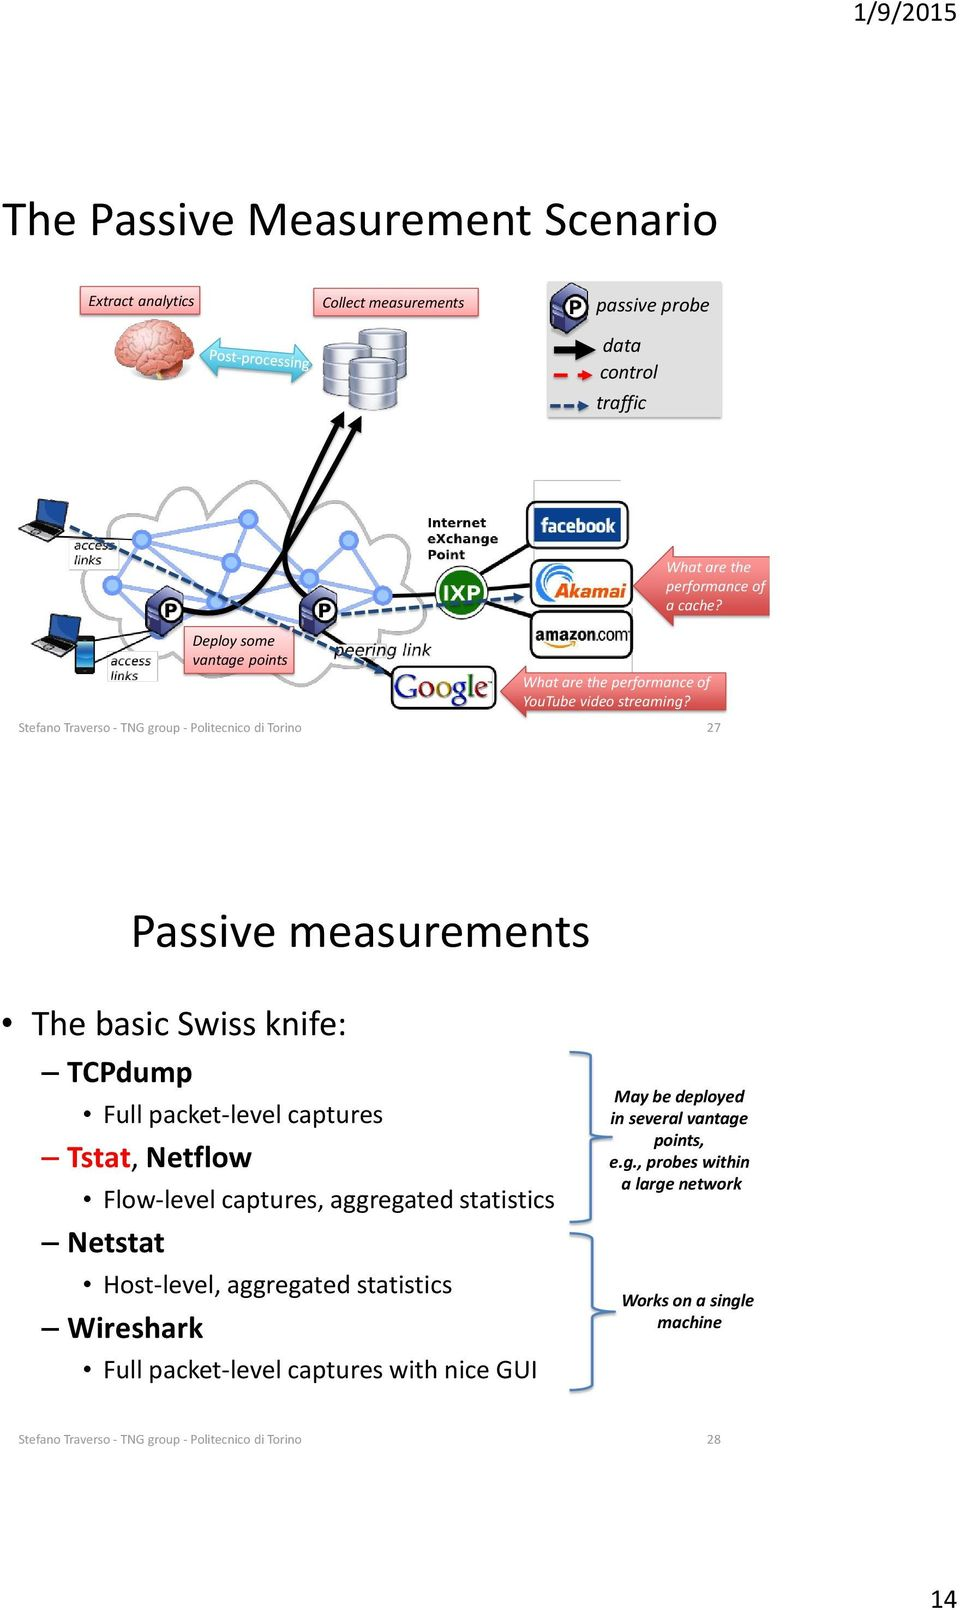 Stefano Traverso - TNG group - Politecnico di Torino 27 Passive measurements The basic Swiss knife: TCPdump Full packet-level captures Tstat, Netflow Flow-level captures,